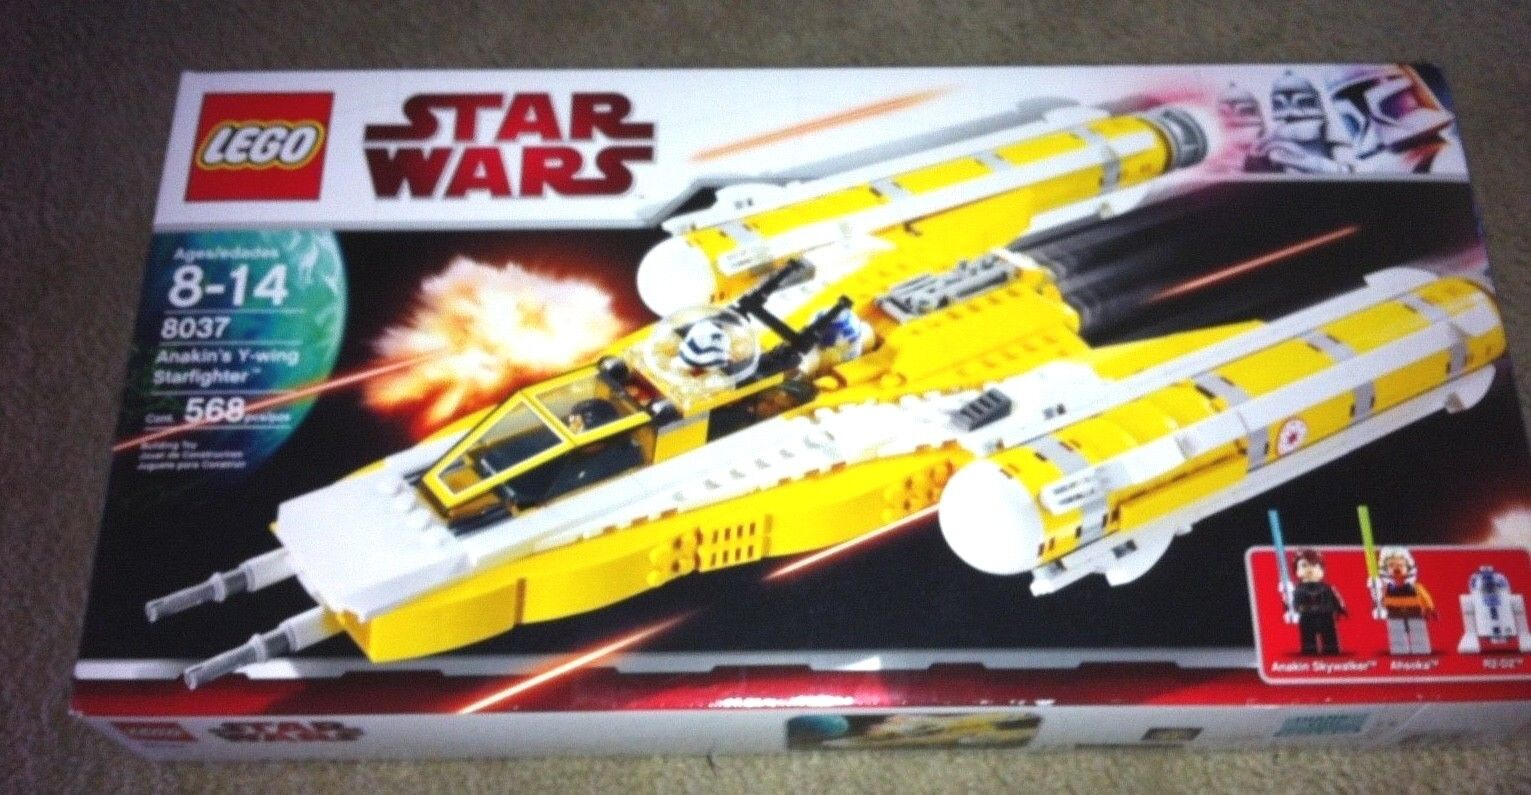 Lego Star Wars The Clone Wars Anakin's Y-wing Starfighter (8037)